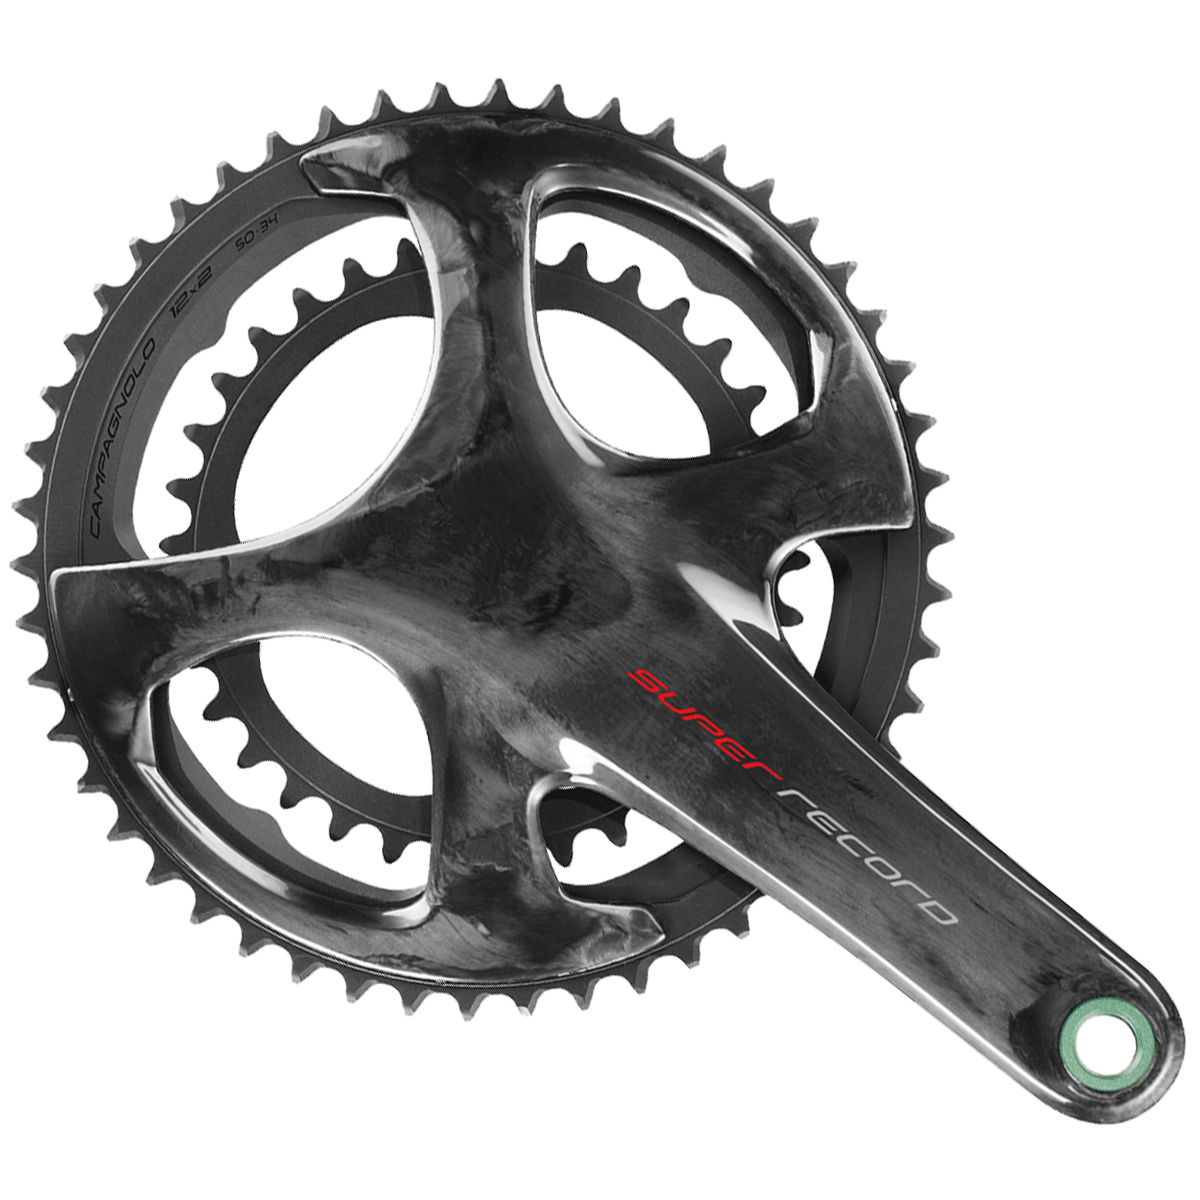 Campagnolo Super Record Carbon Ti Ultra Torque Chainset - 12 Speed